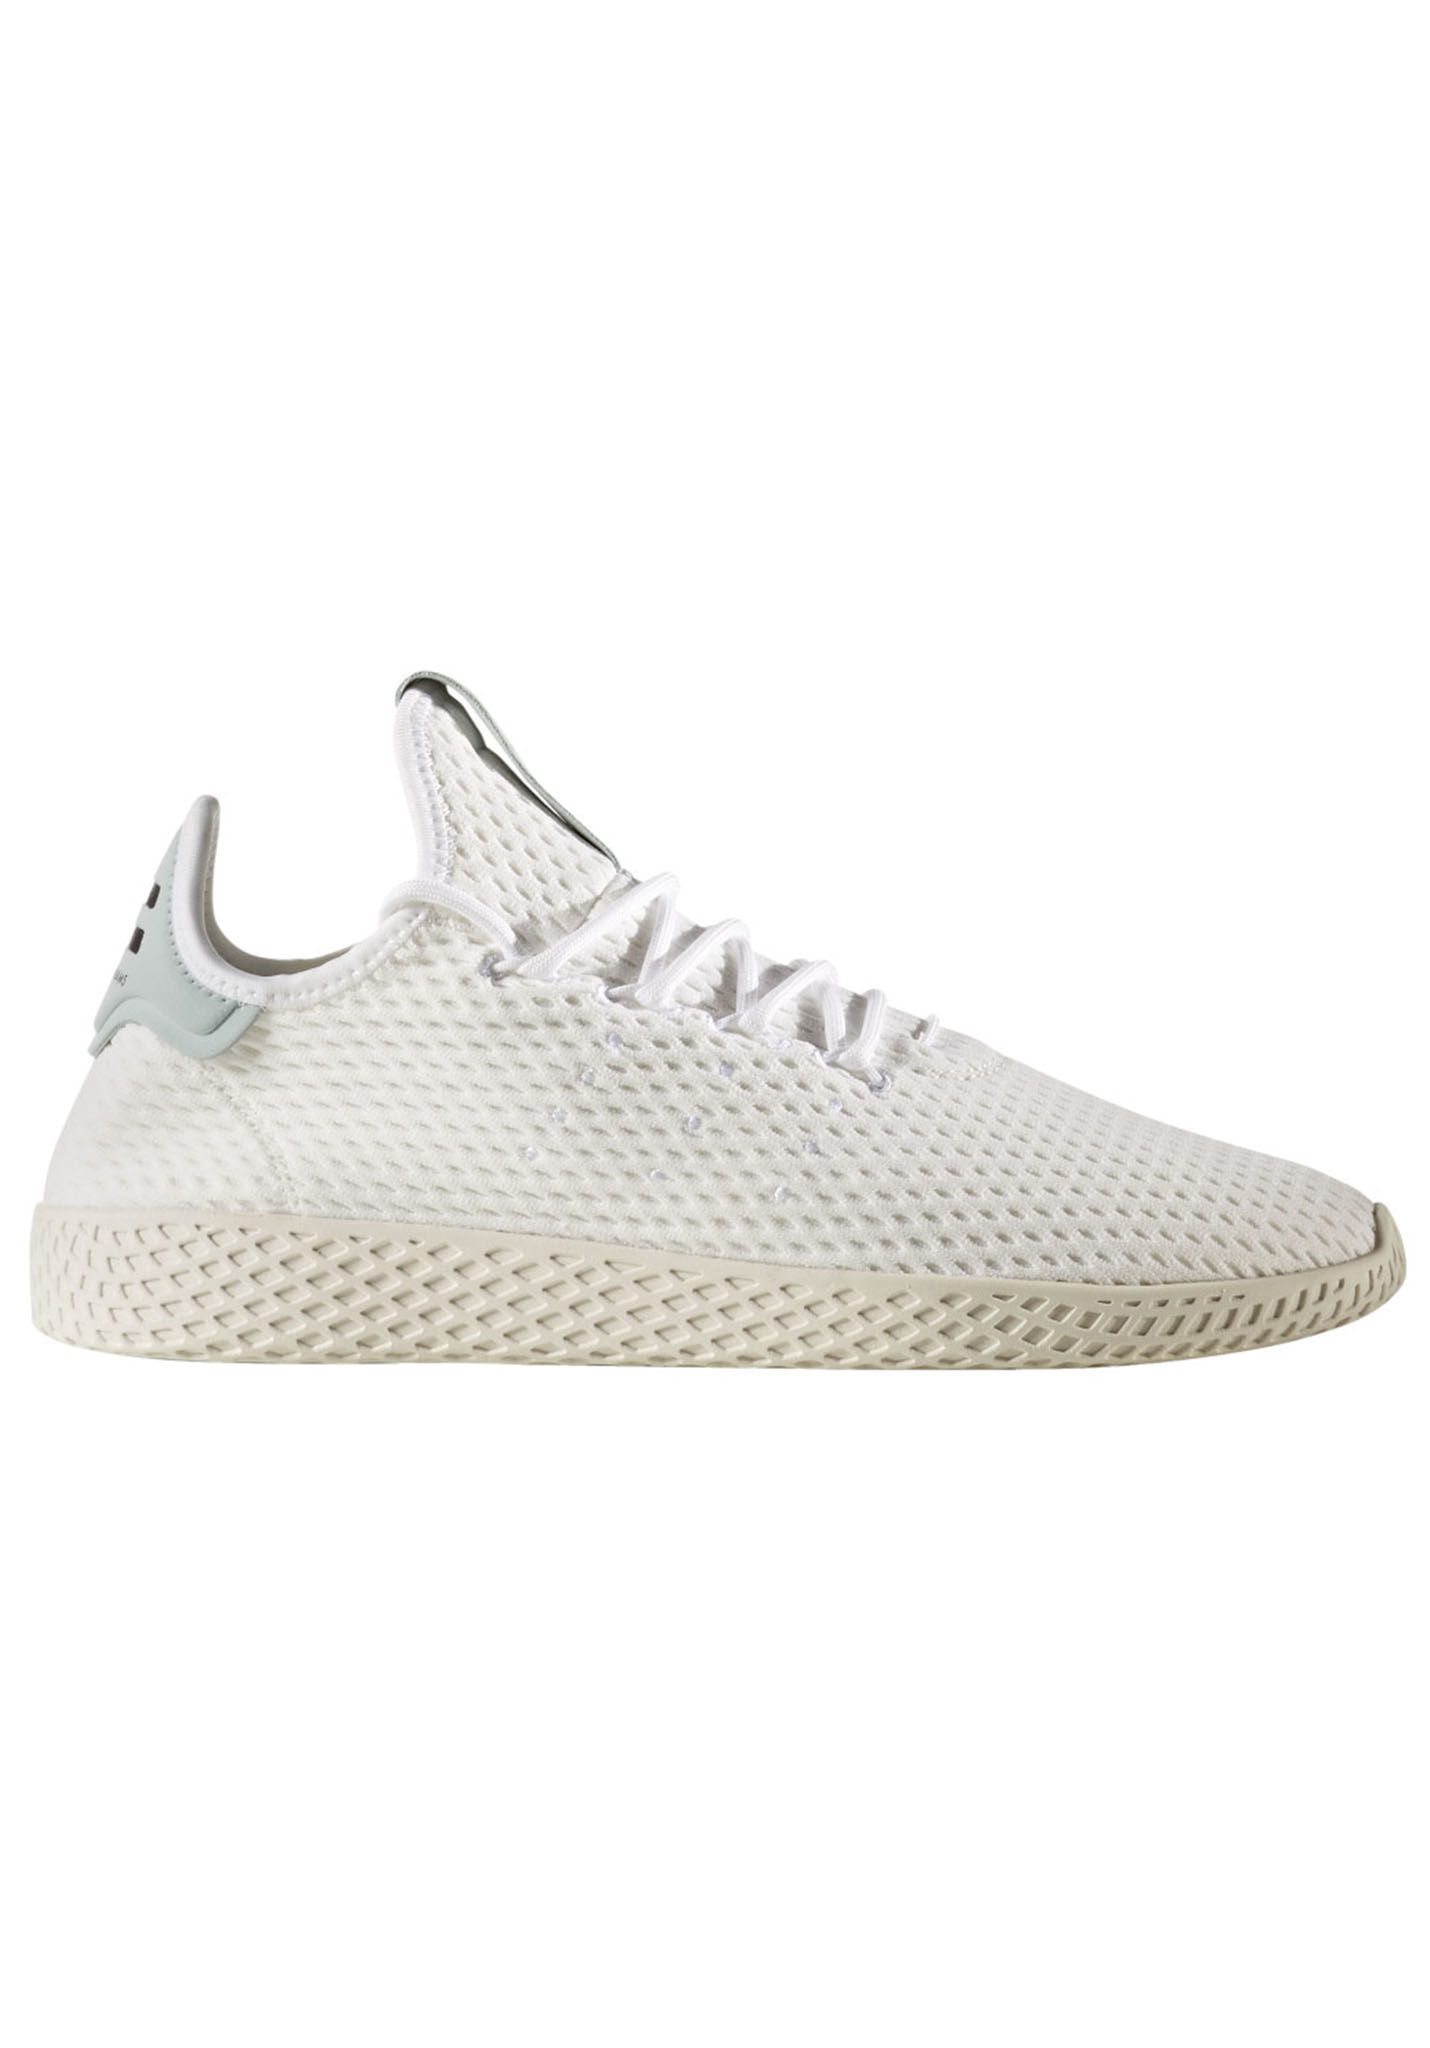 8b81e022a1d ADIDAS ORIGINALS Pharrell Williams Tennis HU - Sneakers - Wit - Planet  Sports